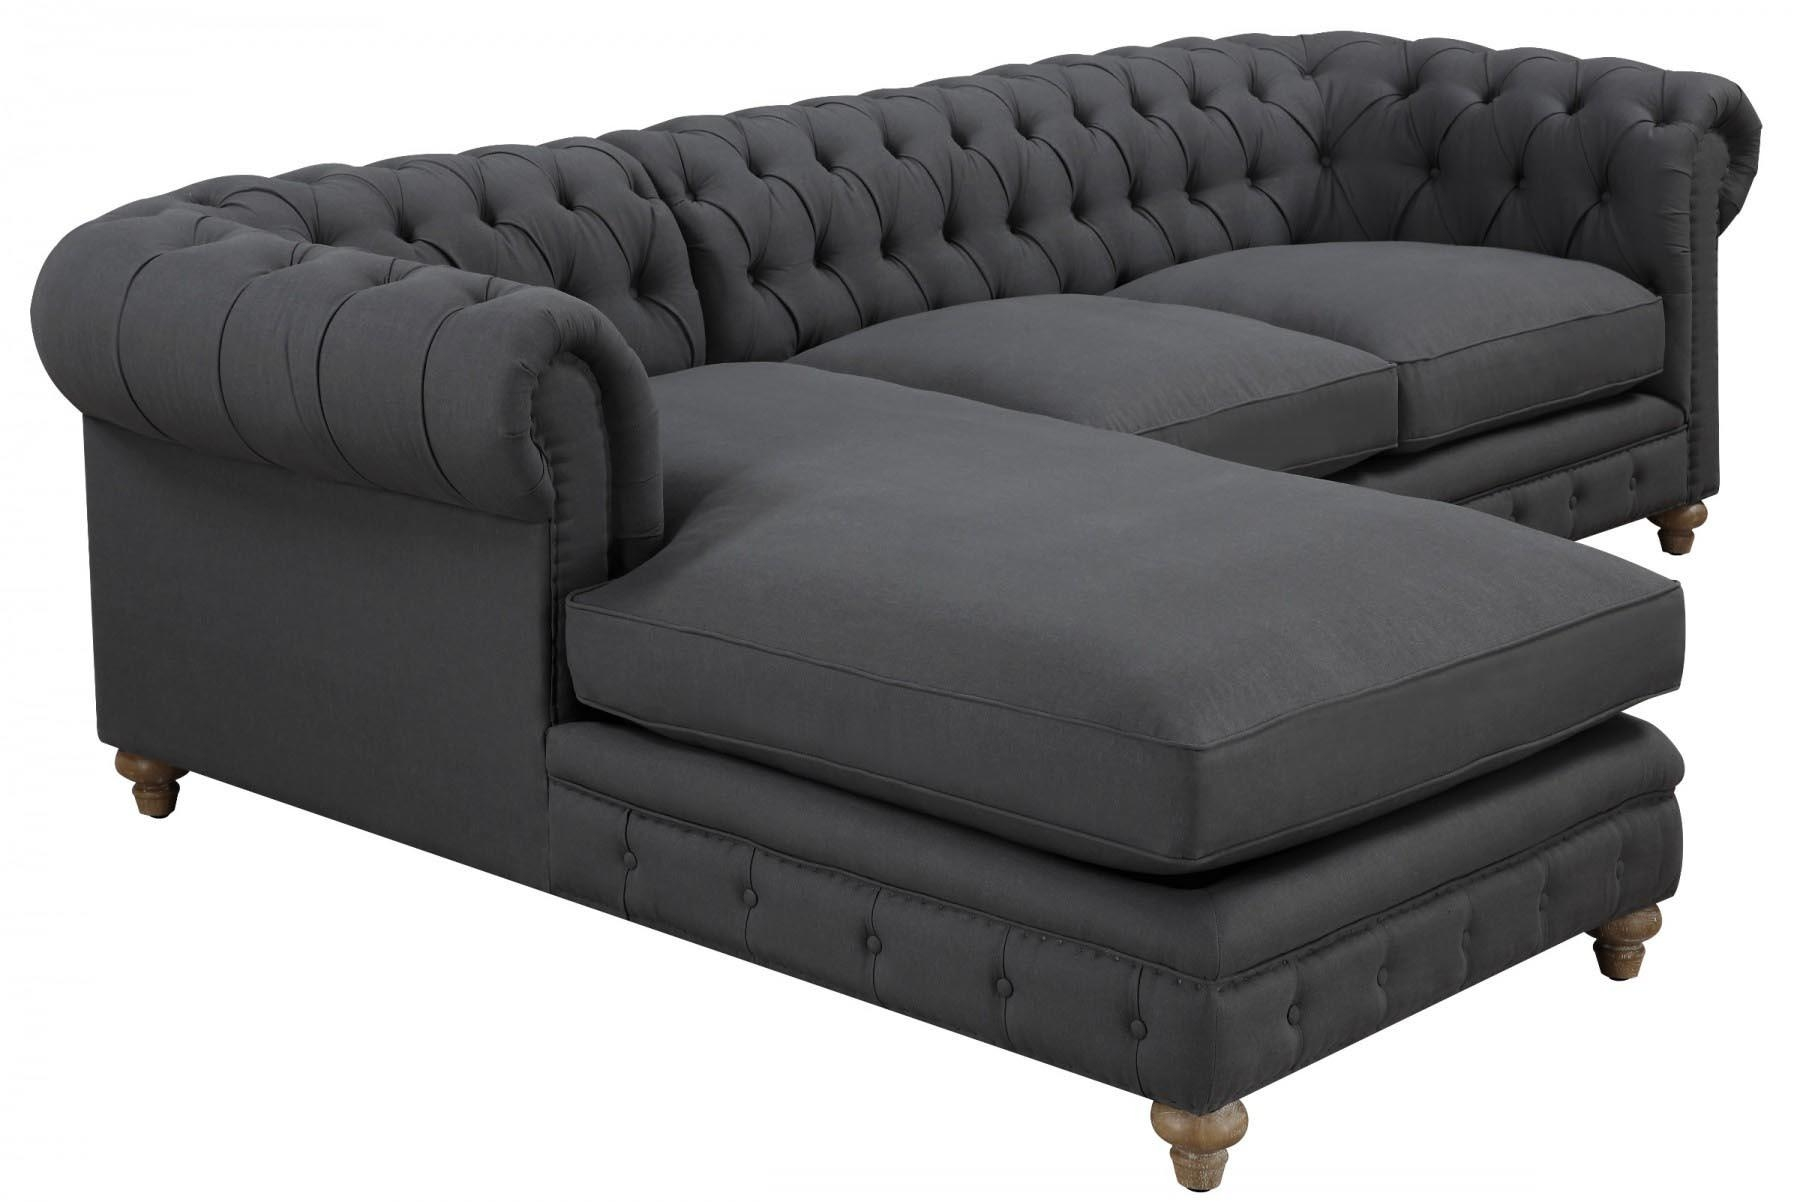 Oxford Grey Linen Sectional Sofa, Tov Furniture – Modern Manhattan Intended For Oxford Sofas (View 16 of 20)